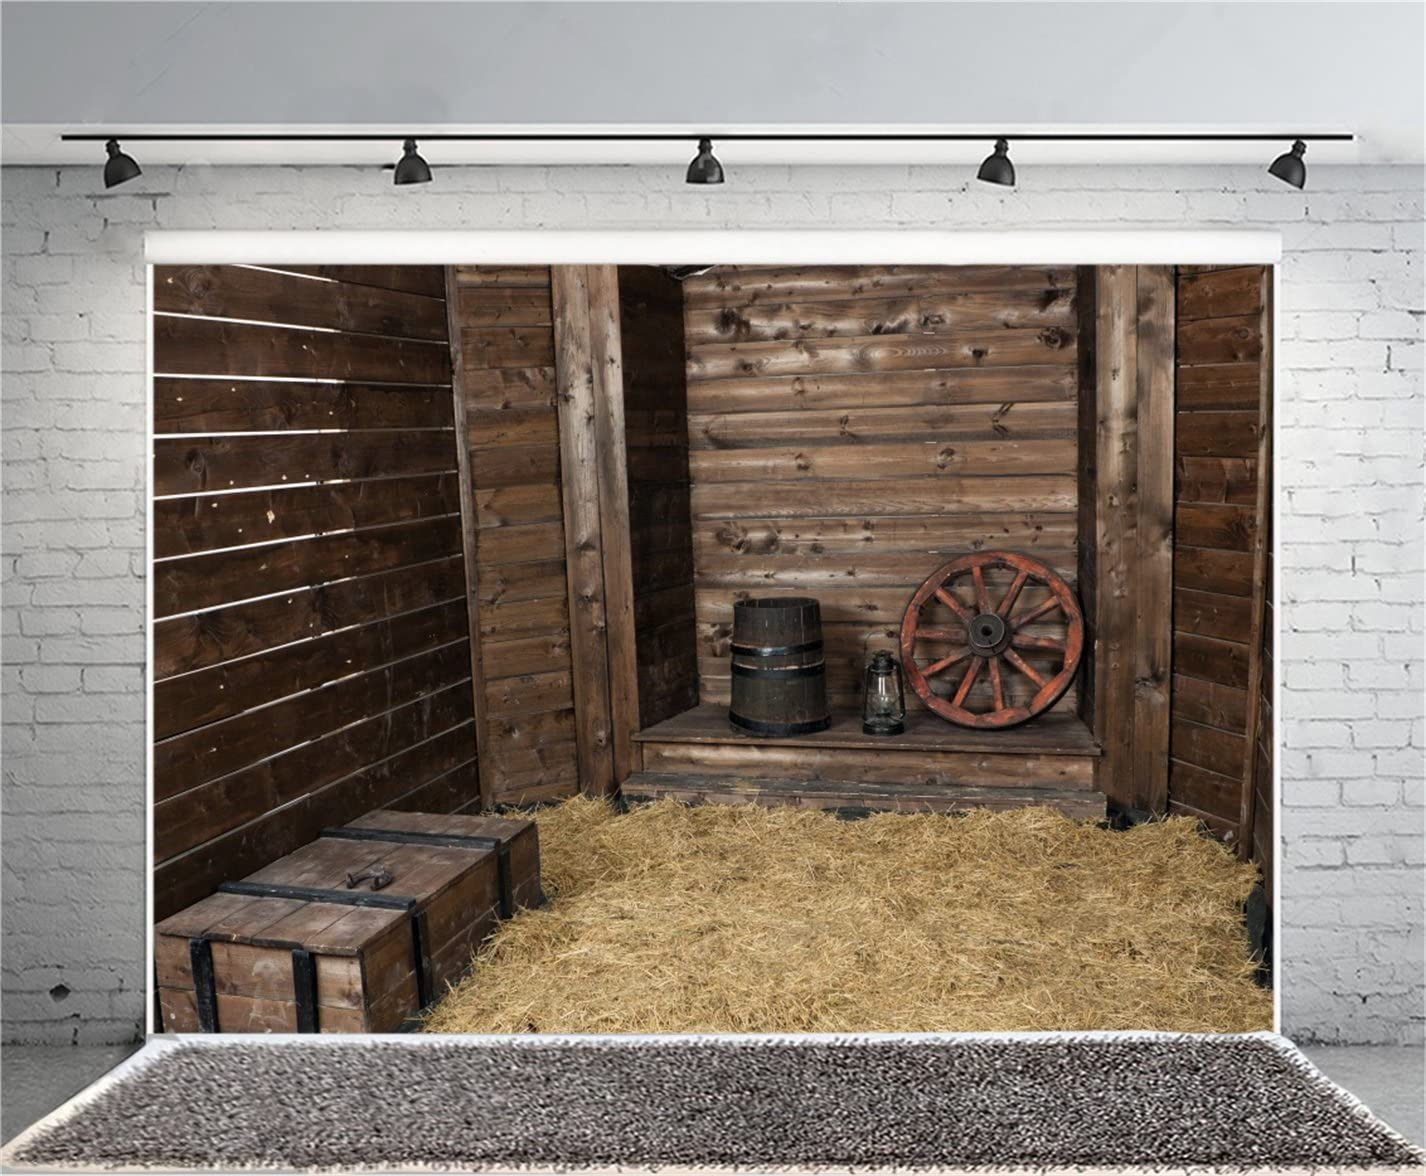 AOFOTO 6x4ft Wooden Hayloft Interior Background Vintage Rustic Western Barn Photography Backdrop Hay Straw Bales Old Wheel Hub Photo Studio Props Kid Artistic Portrait Vinyl Wallpaper